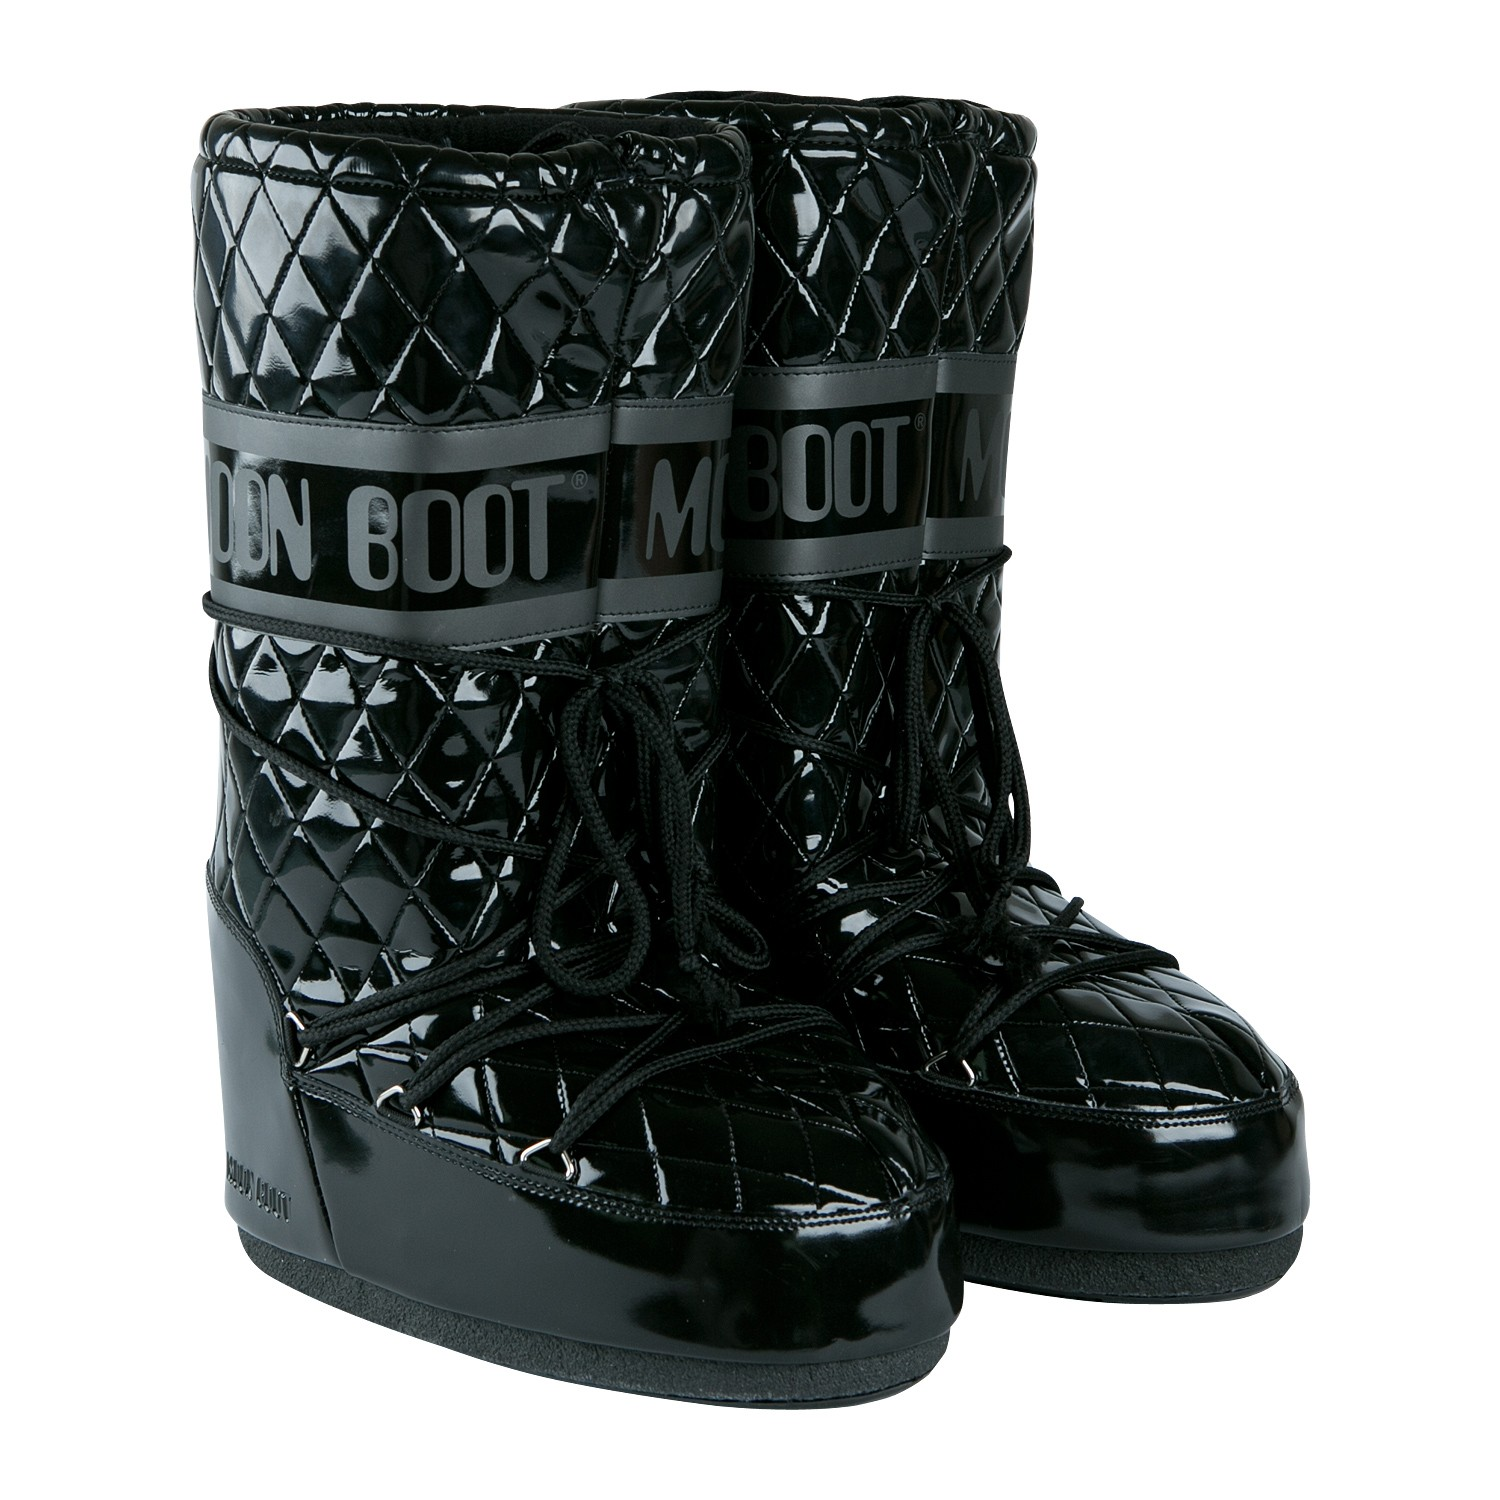 http://moonboot.net.ua/images/upload/tecnica_moon-boots%20queen%2011.jpg